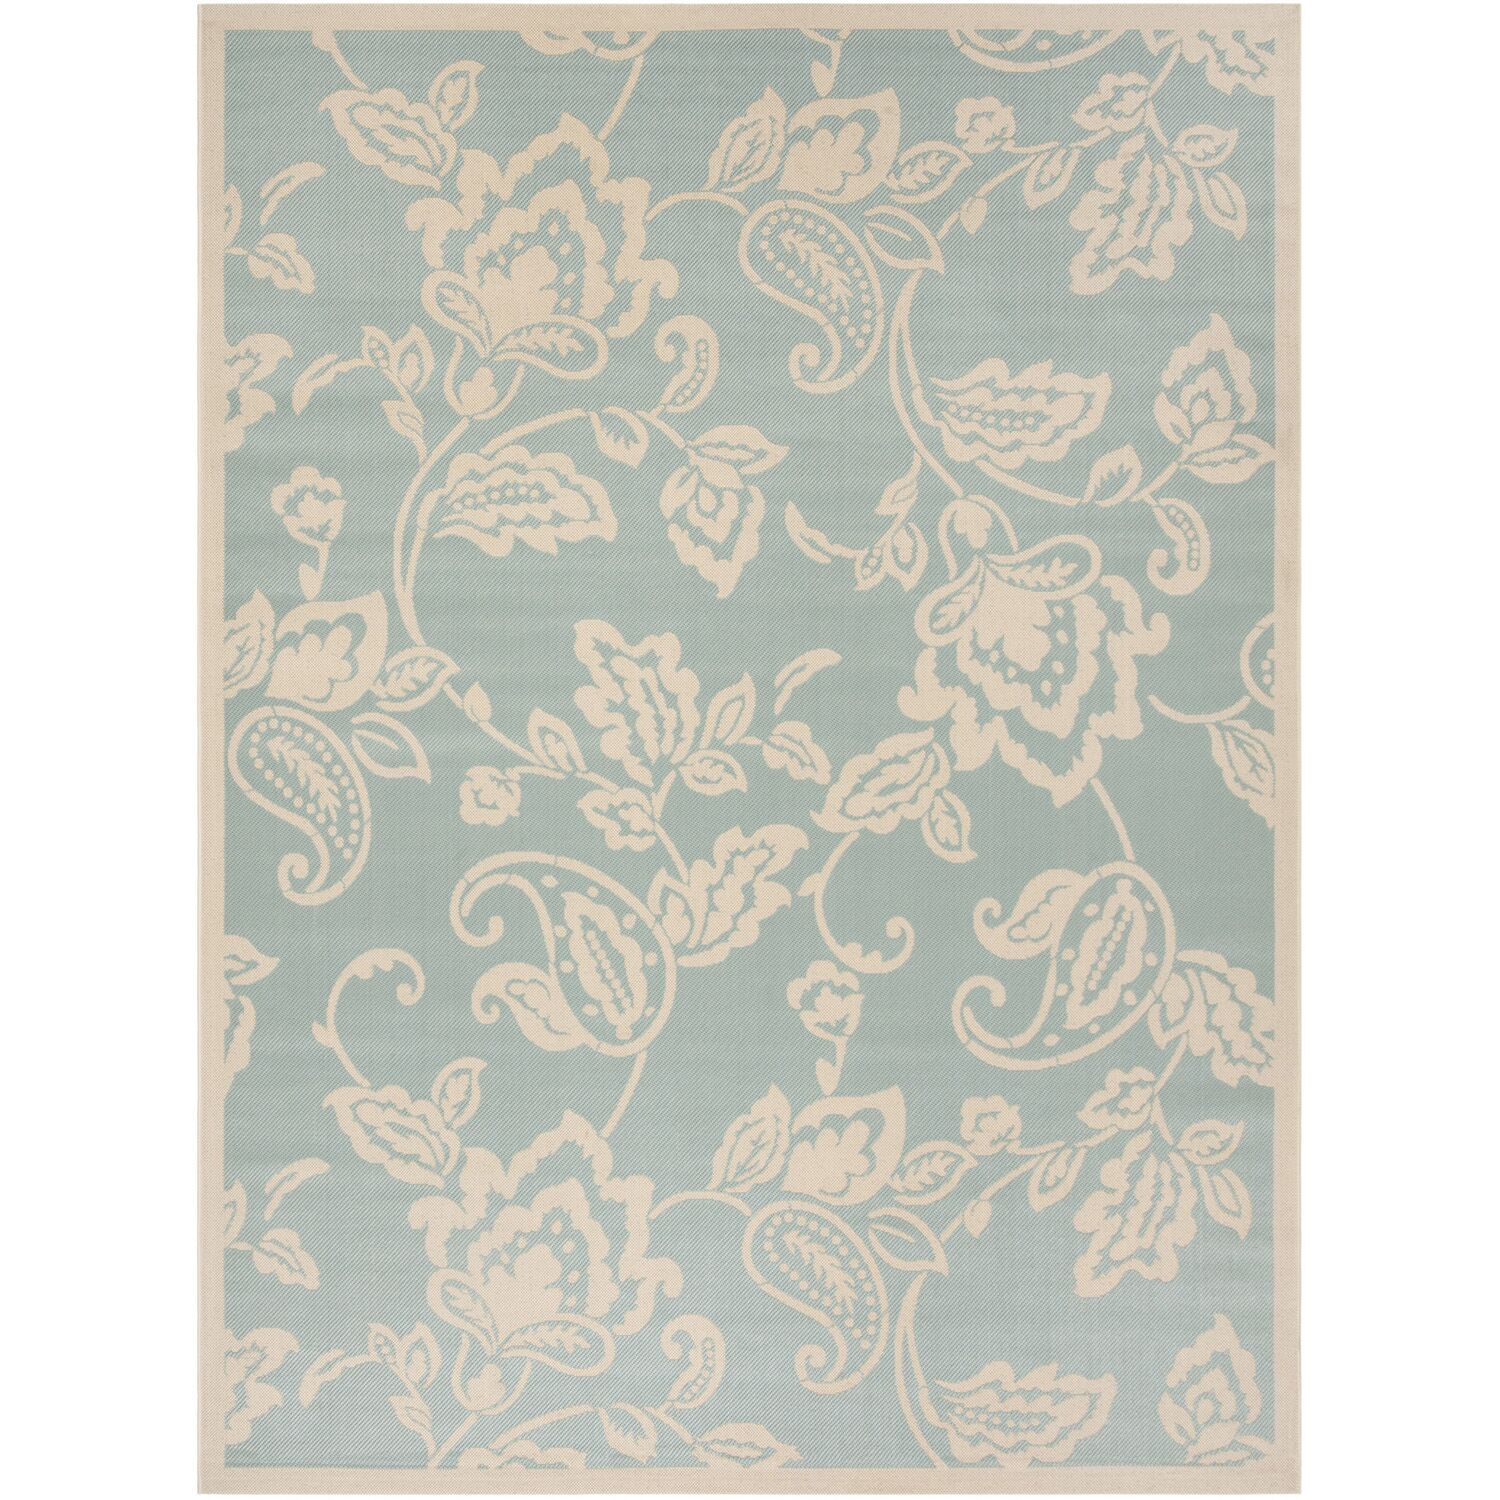 Berrima Aqua/Beige Area Rug Rug Size: Rectangle 8' x 11'2